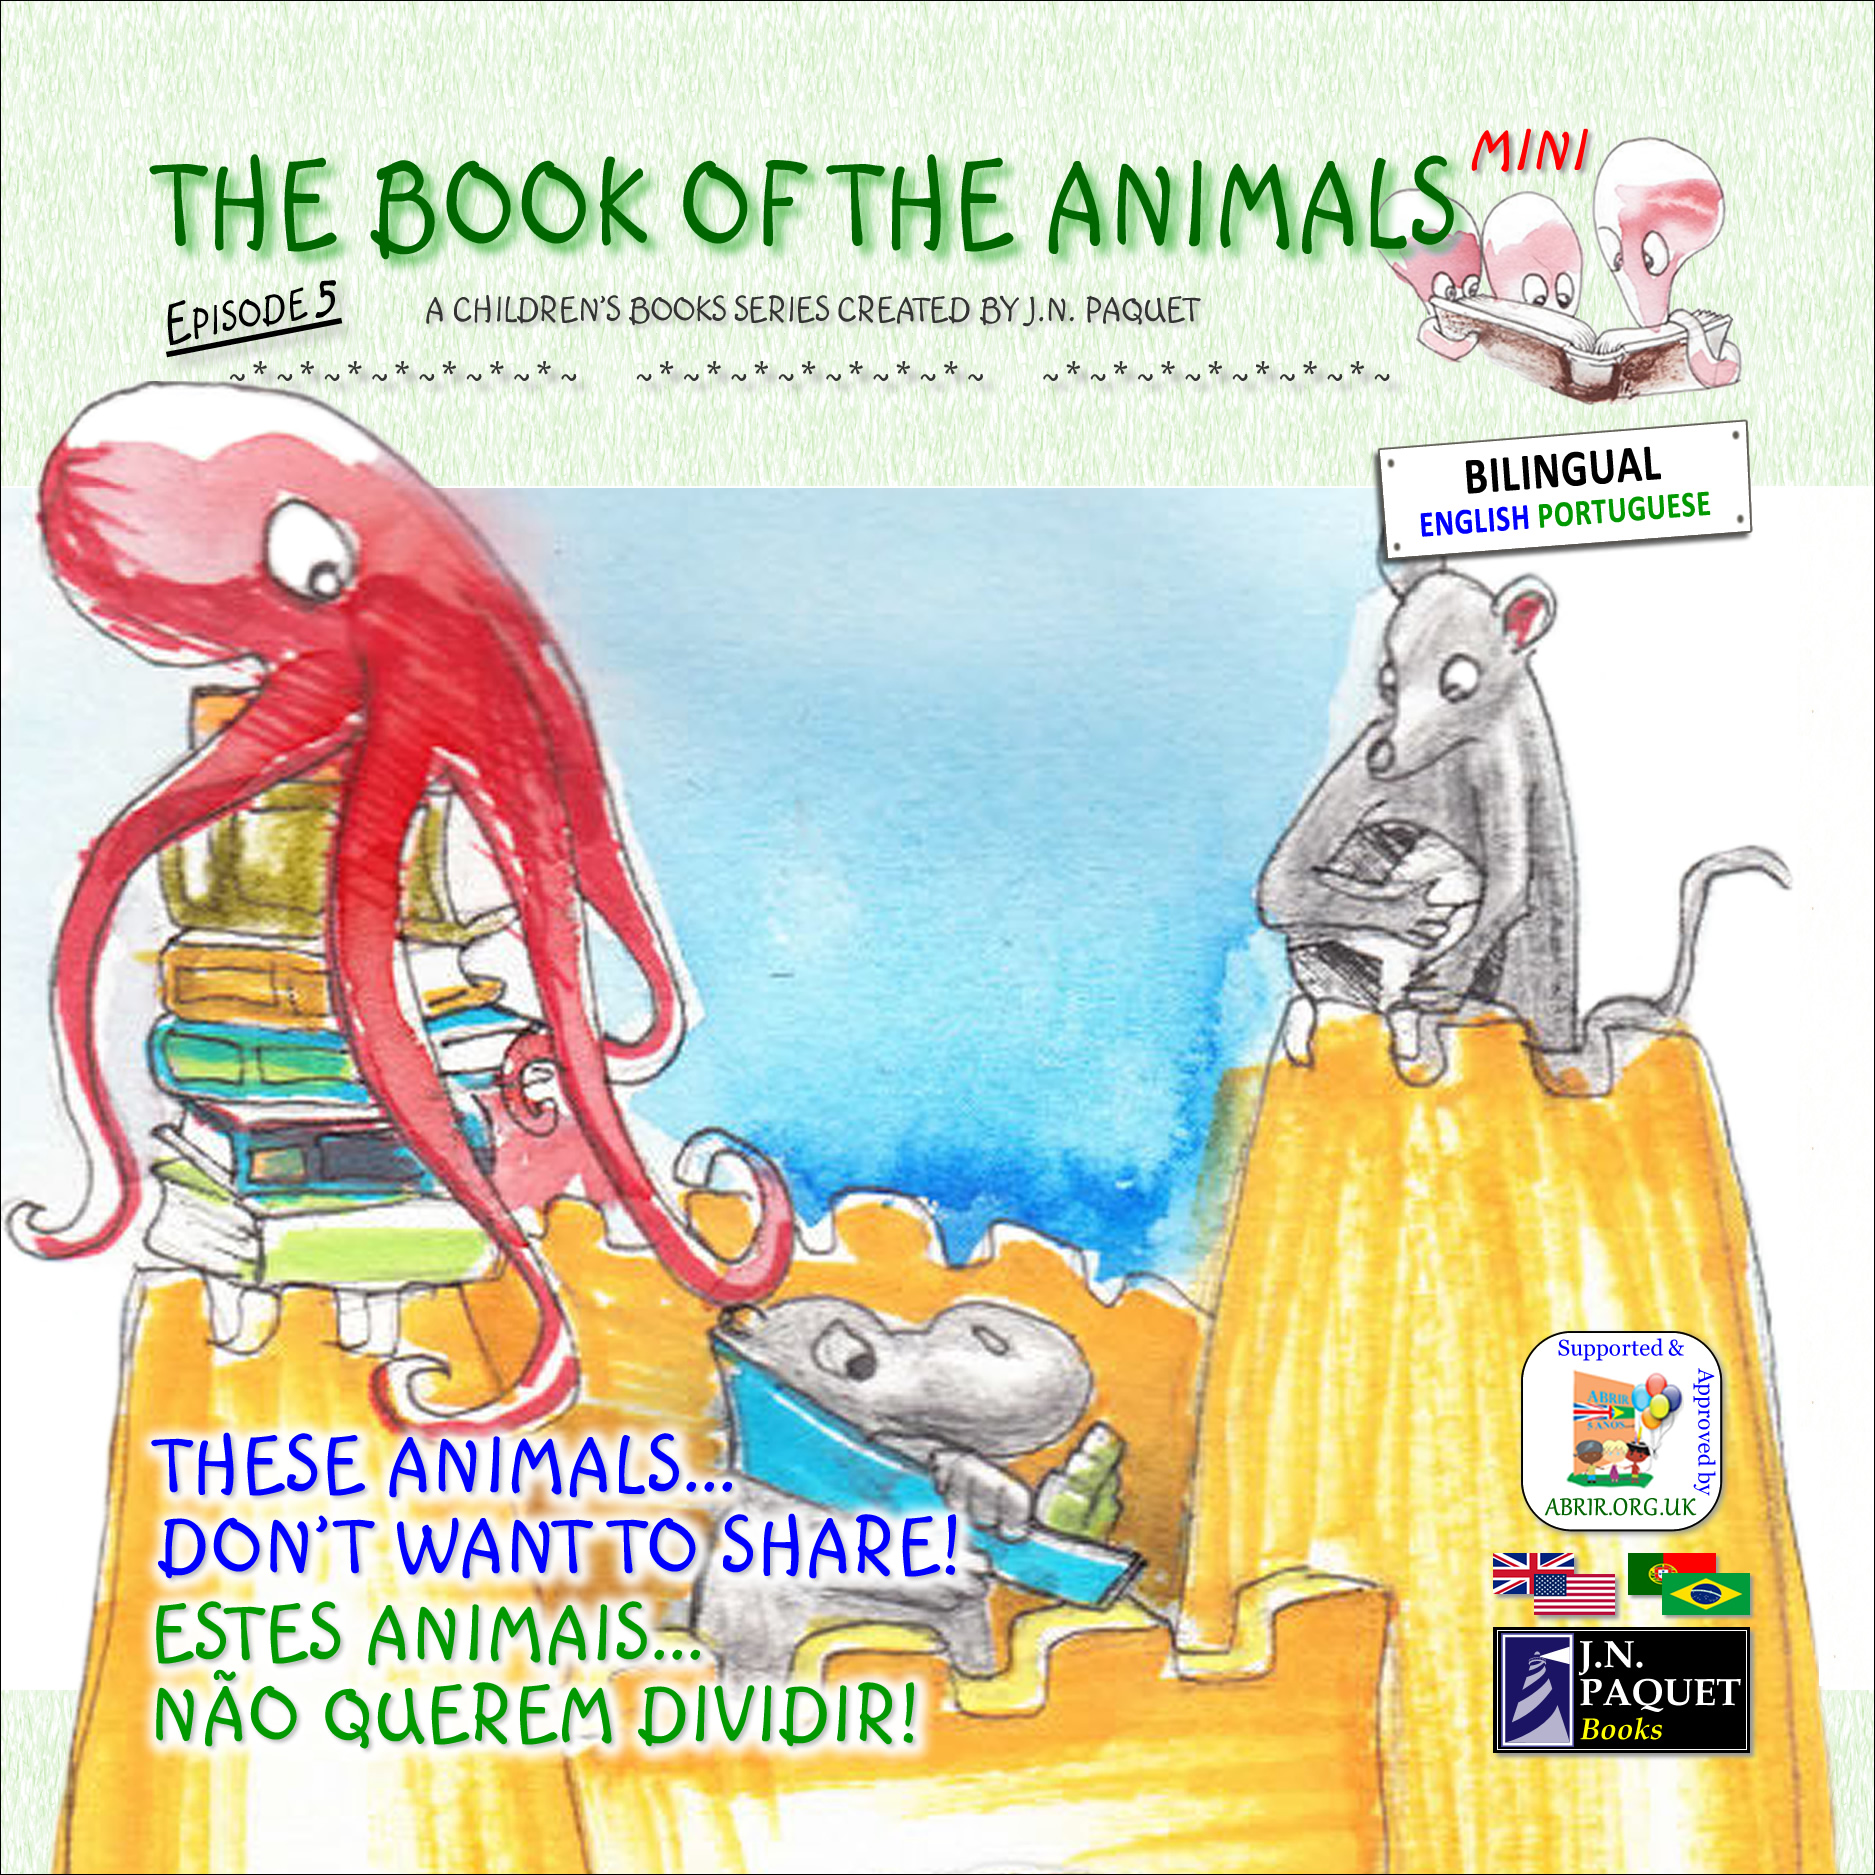 The Book of The Animals - Mini - Episode 5 (Bilingual English-Portuguese)